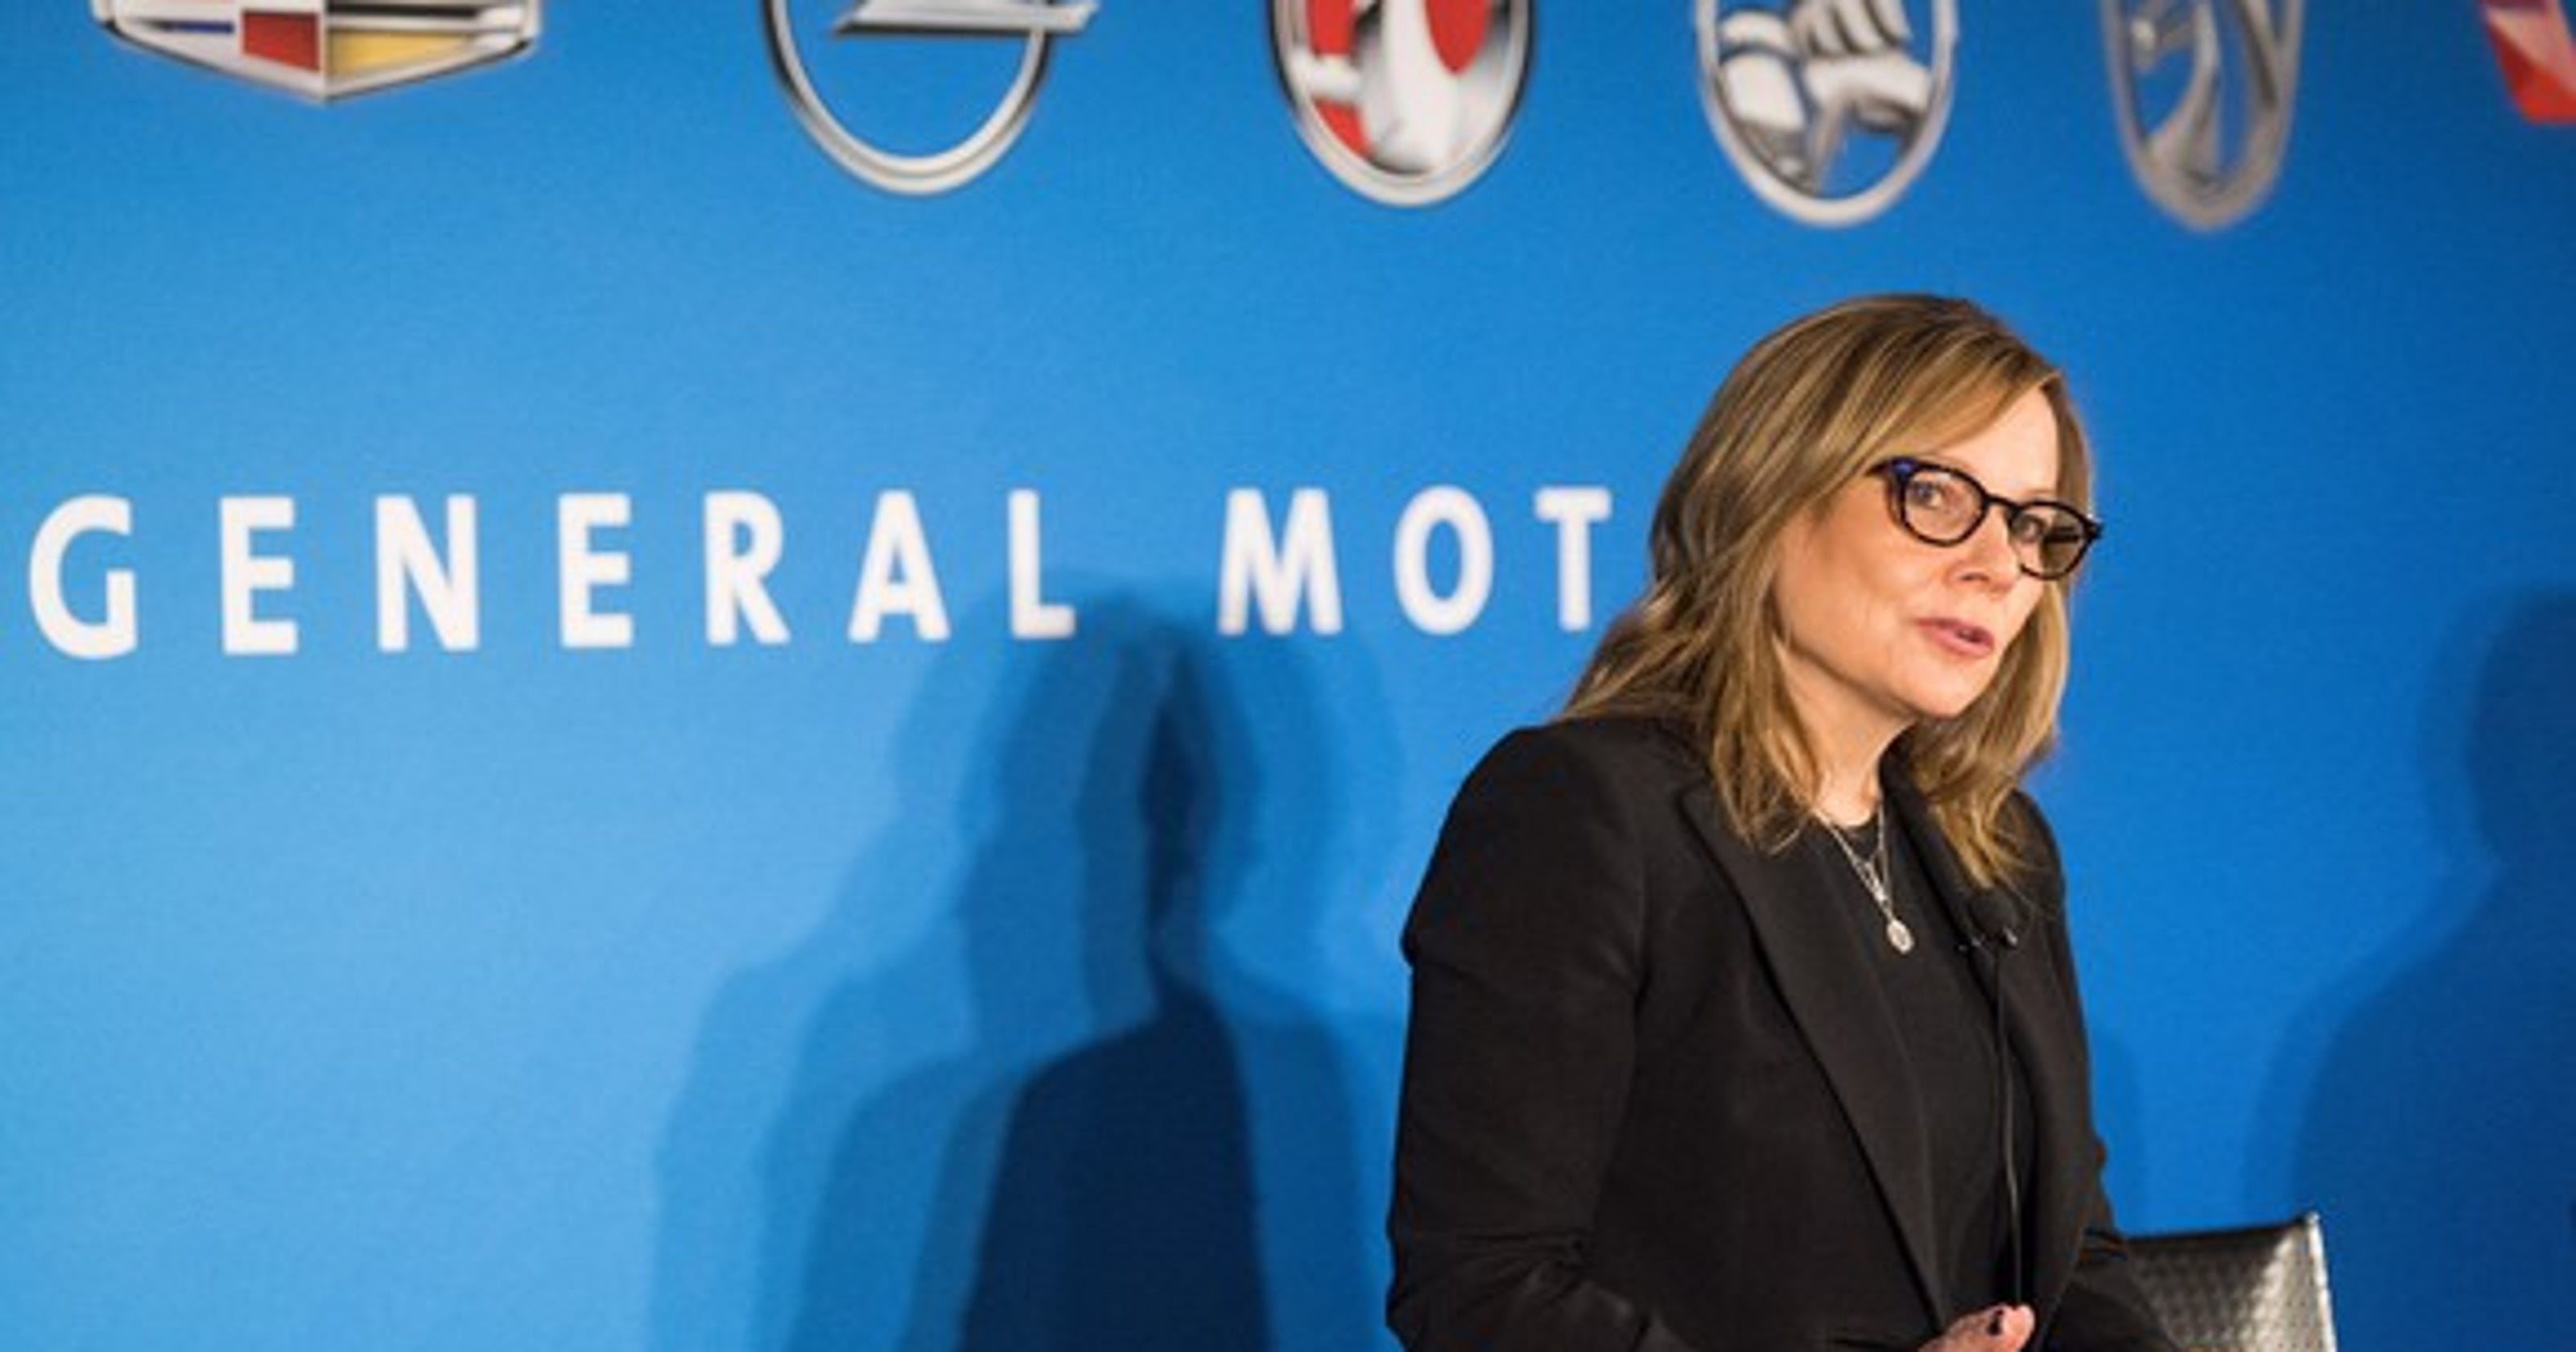 Why GM CEO Mary Barra killed Chevrolet cars, approved plant closures